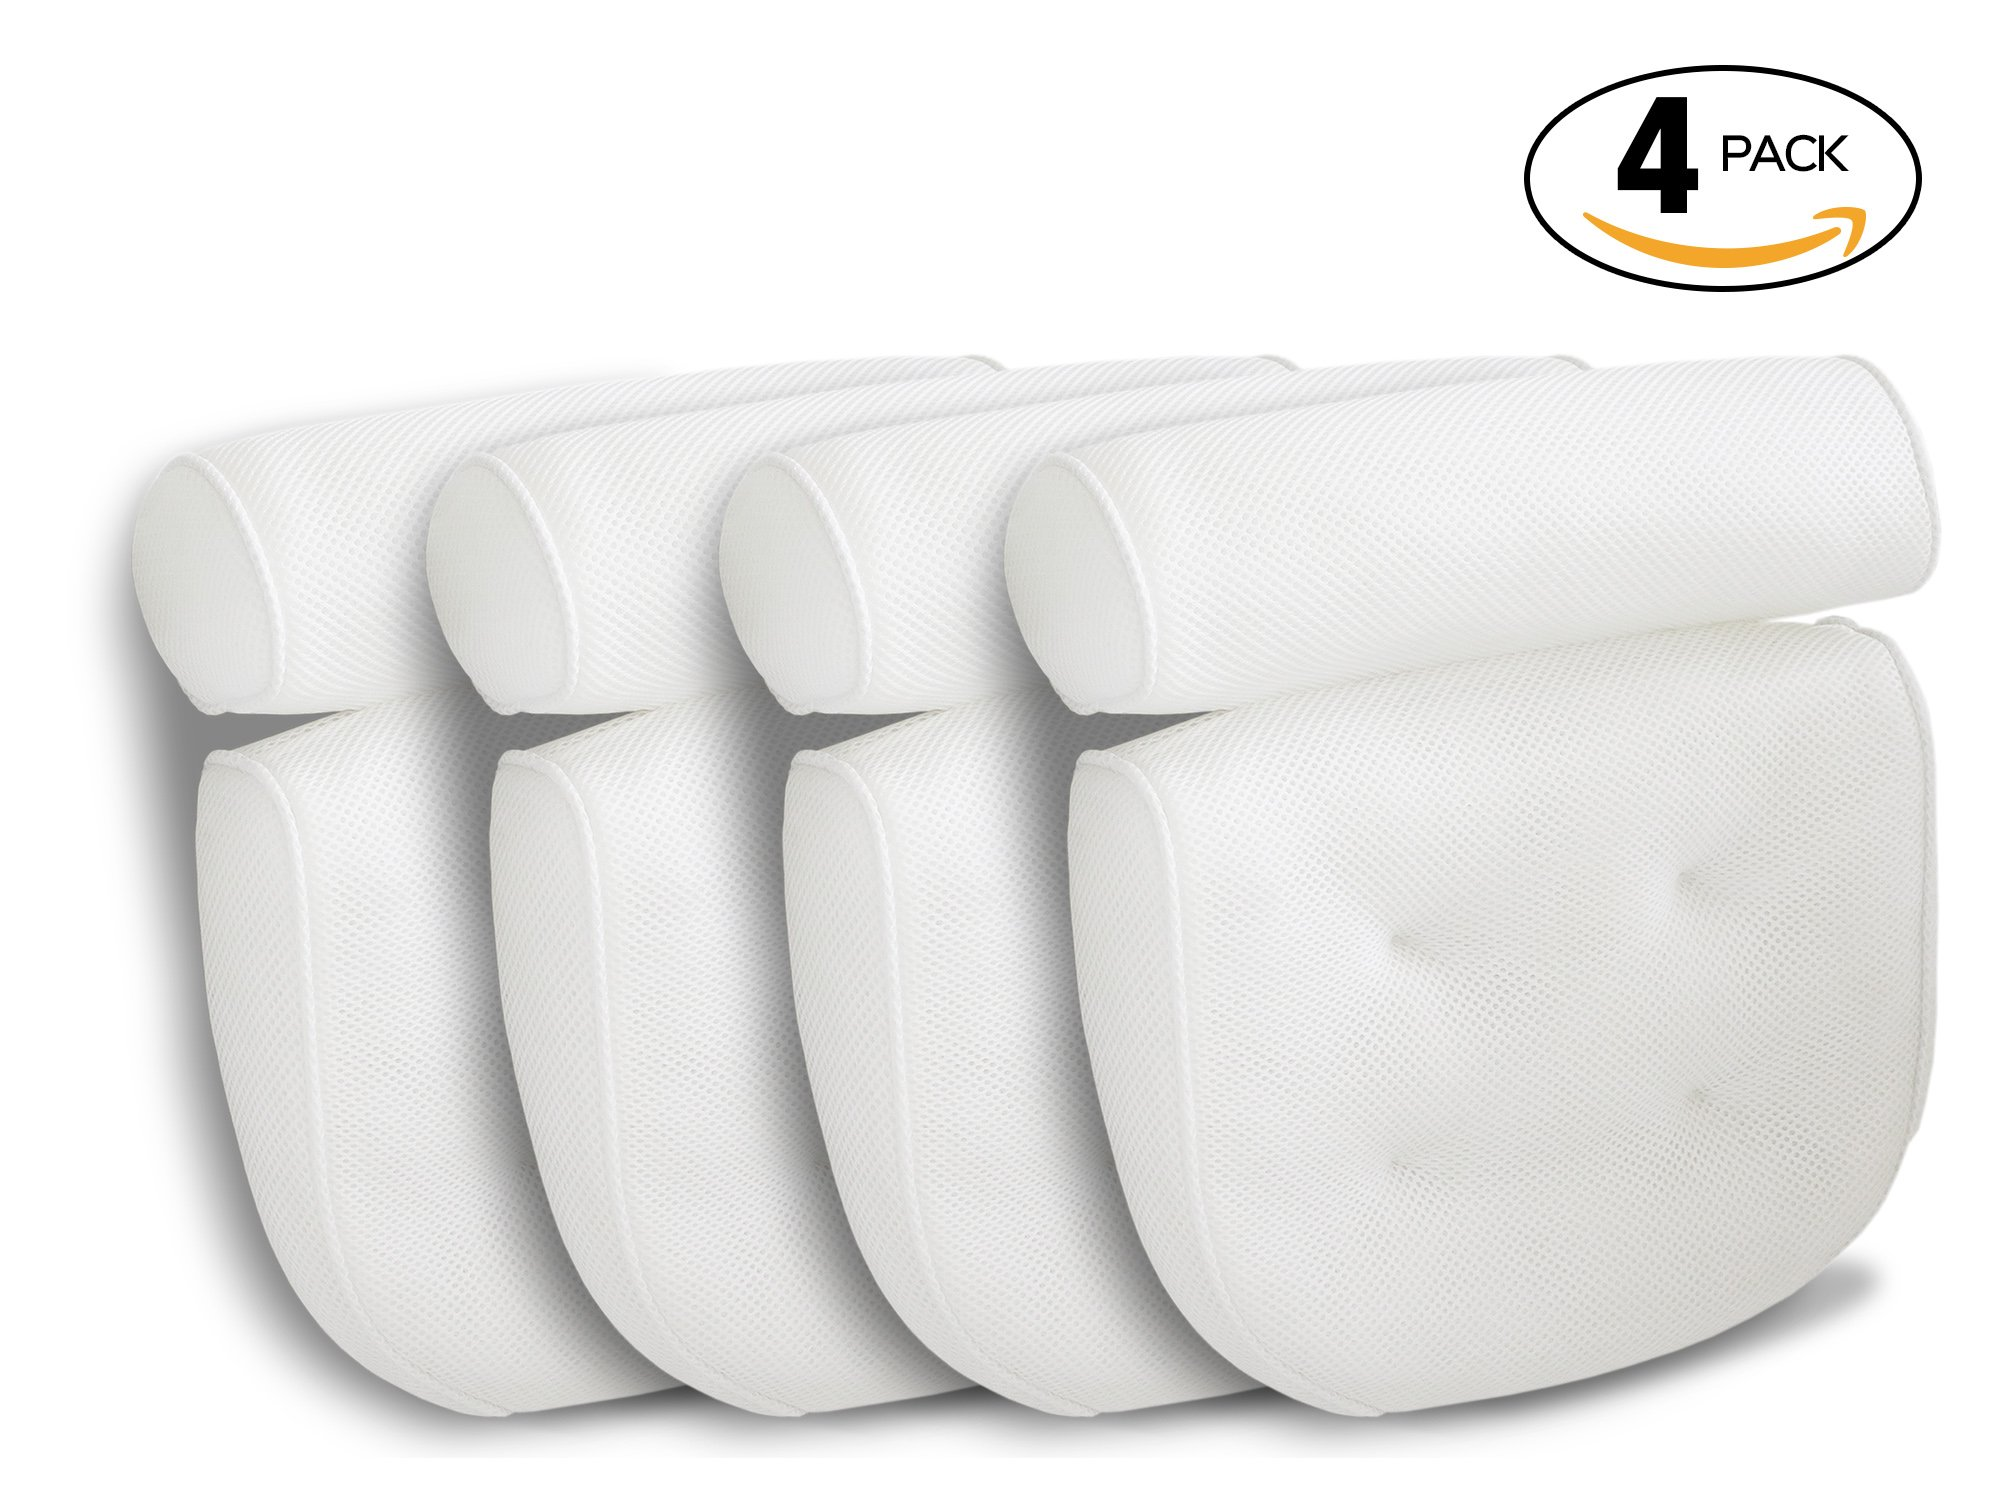 Viventive Luxury Spa Bath Pillows 4 Pack with Head, Neck, Shoulder and Back Support. Non-Slip, Extra Thick, Soft and Large 14x13in for the ultimate relaxation experience. Fits any tub. by